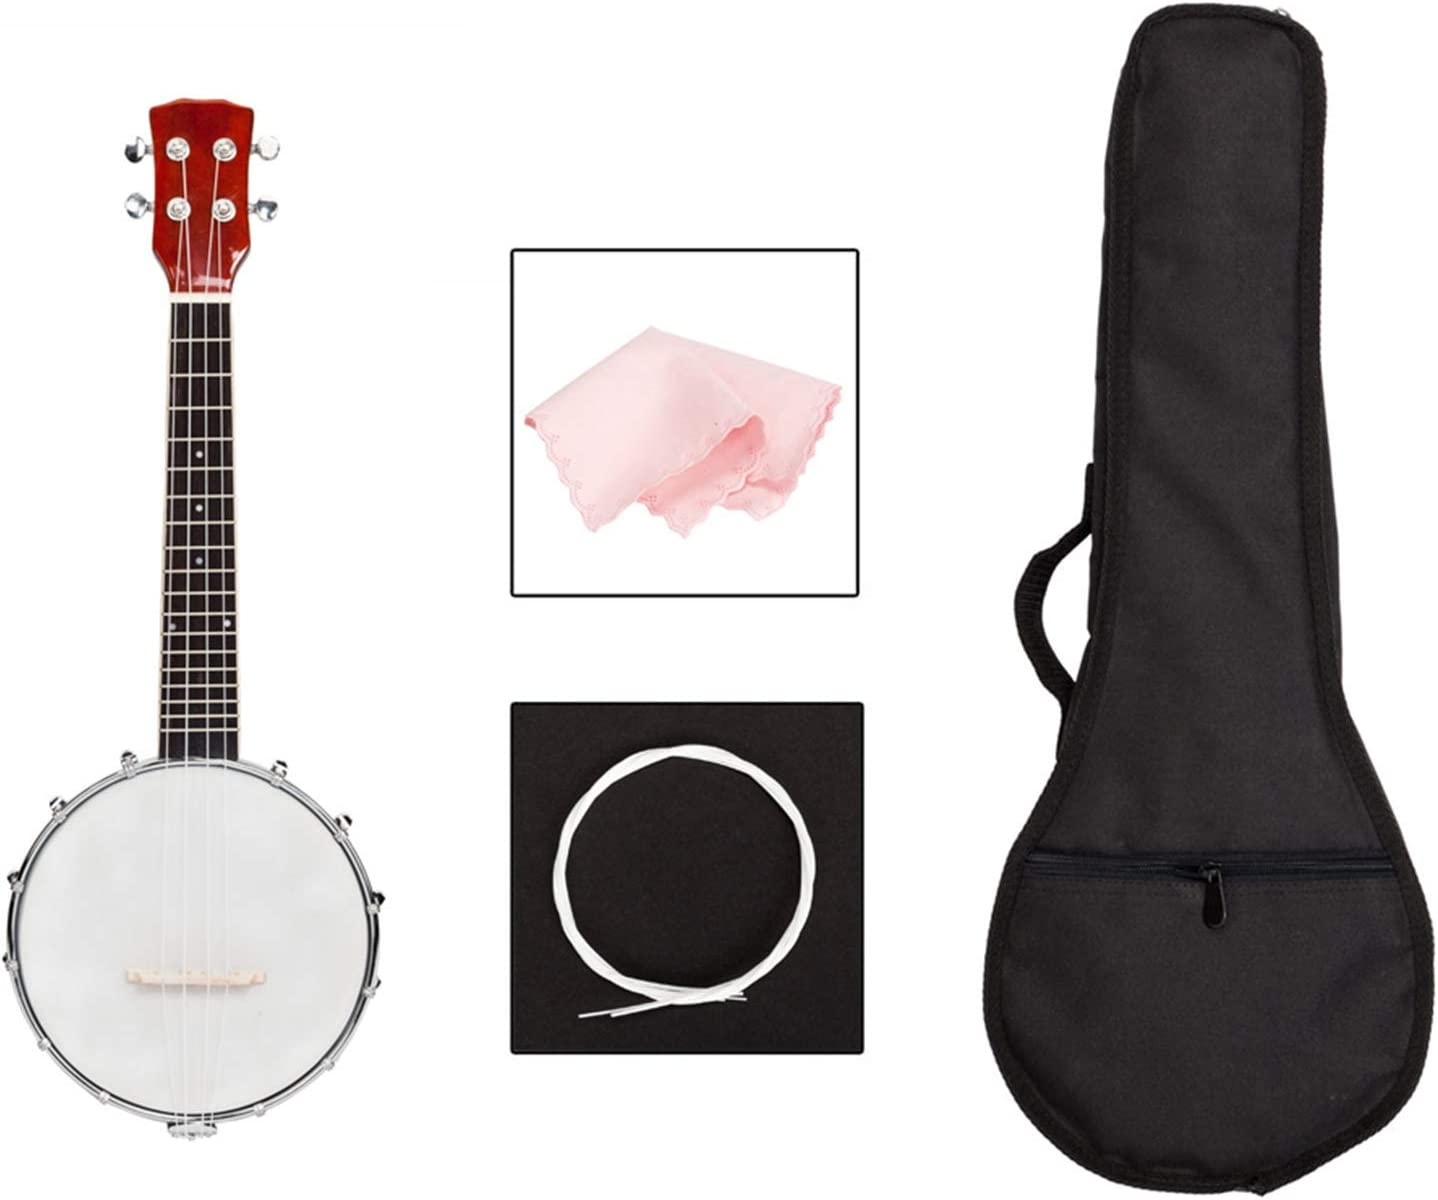 Banjo; Exquisite Ranking TOP9 WoodMetal 4-String Ins Banjos Musical Stringed Inventory cleanup selling sale